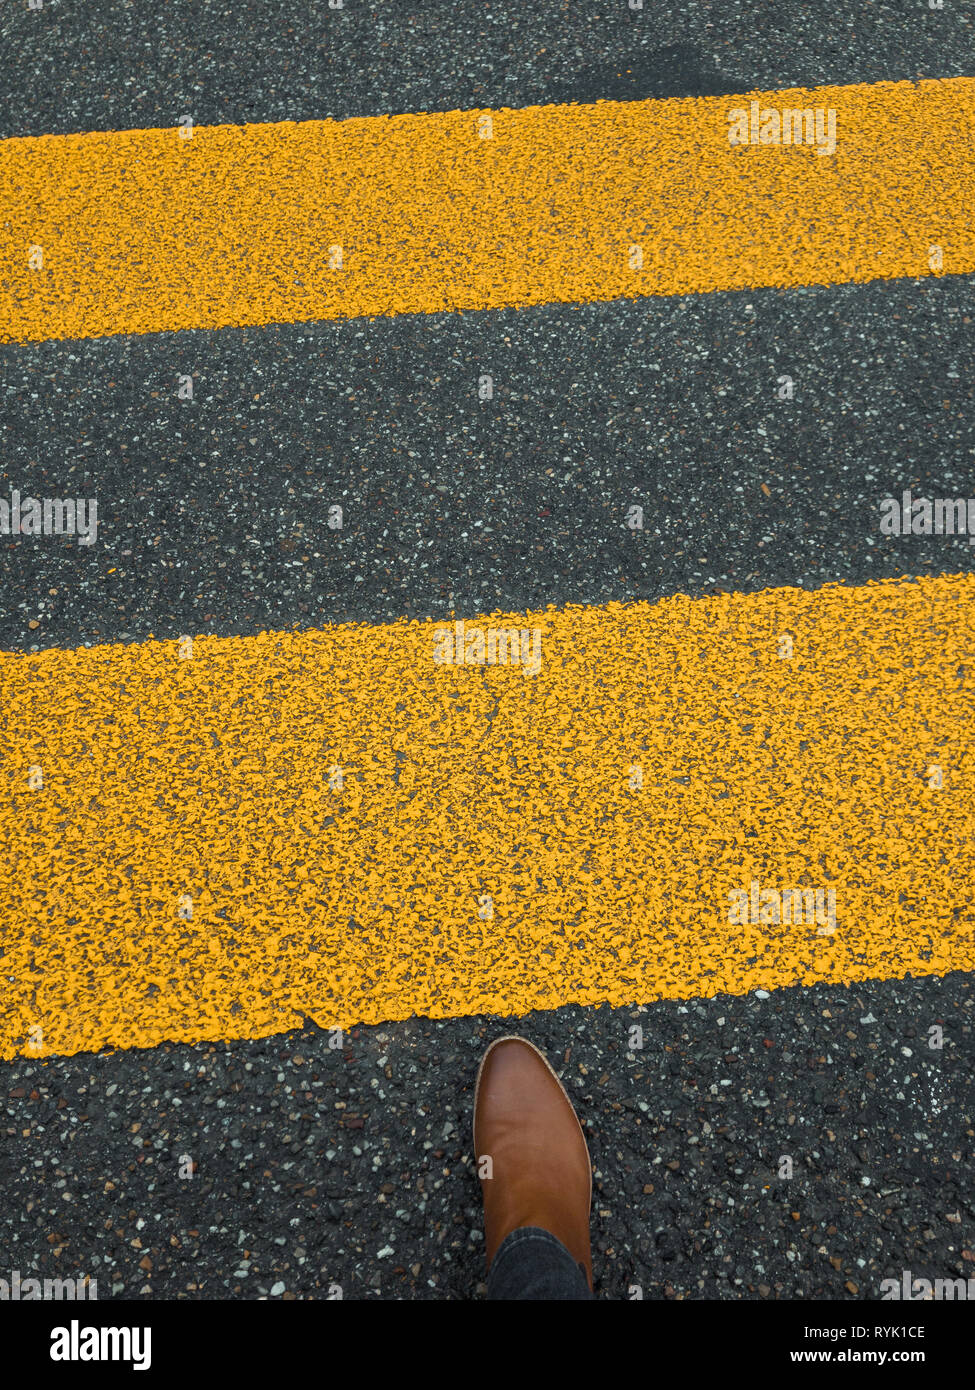 pedestrian stripe on pavement with feet - Stock Image